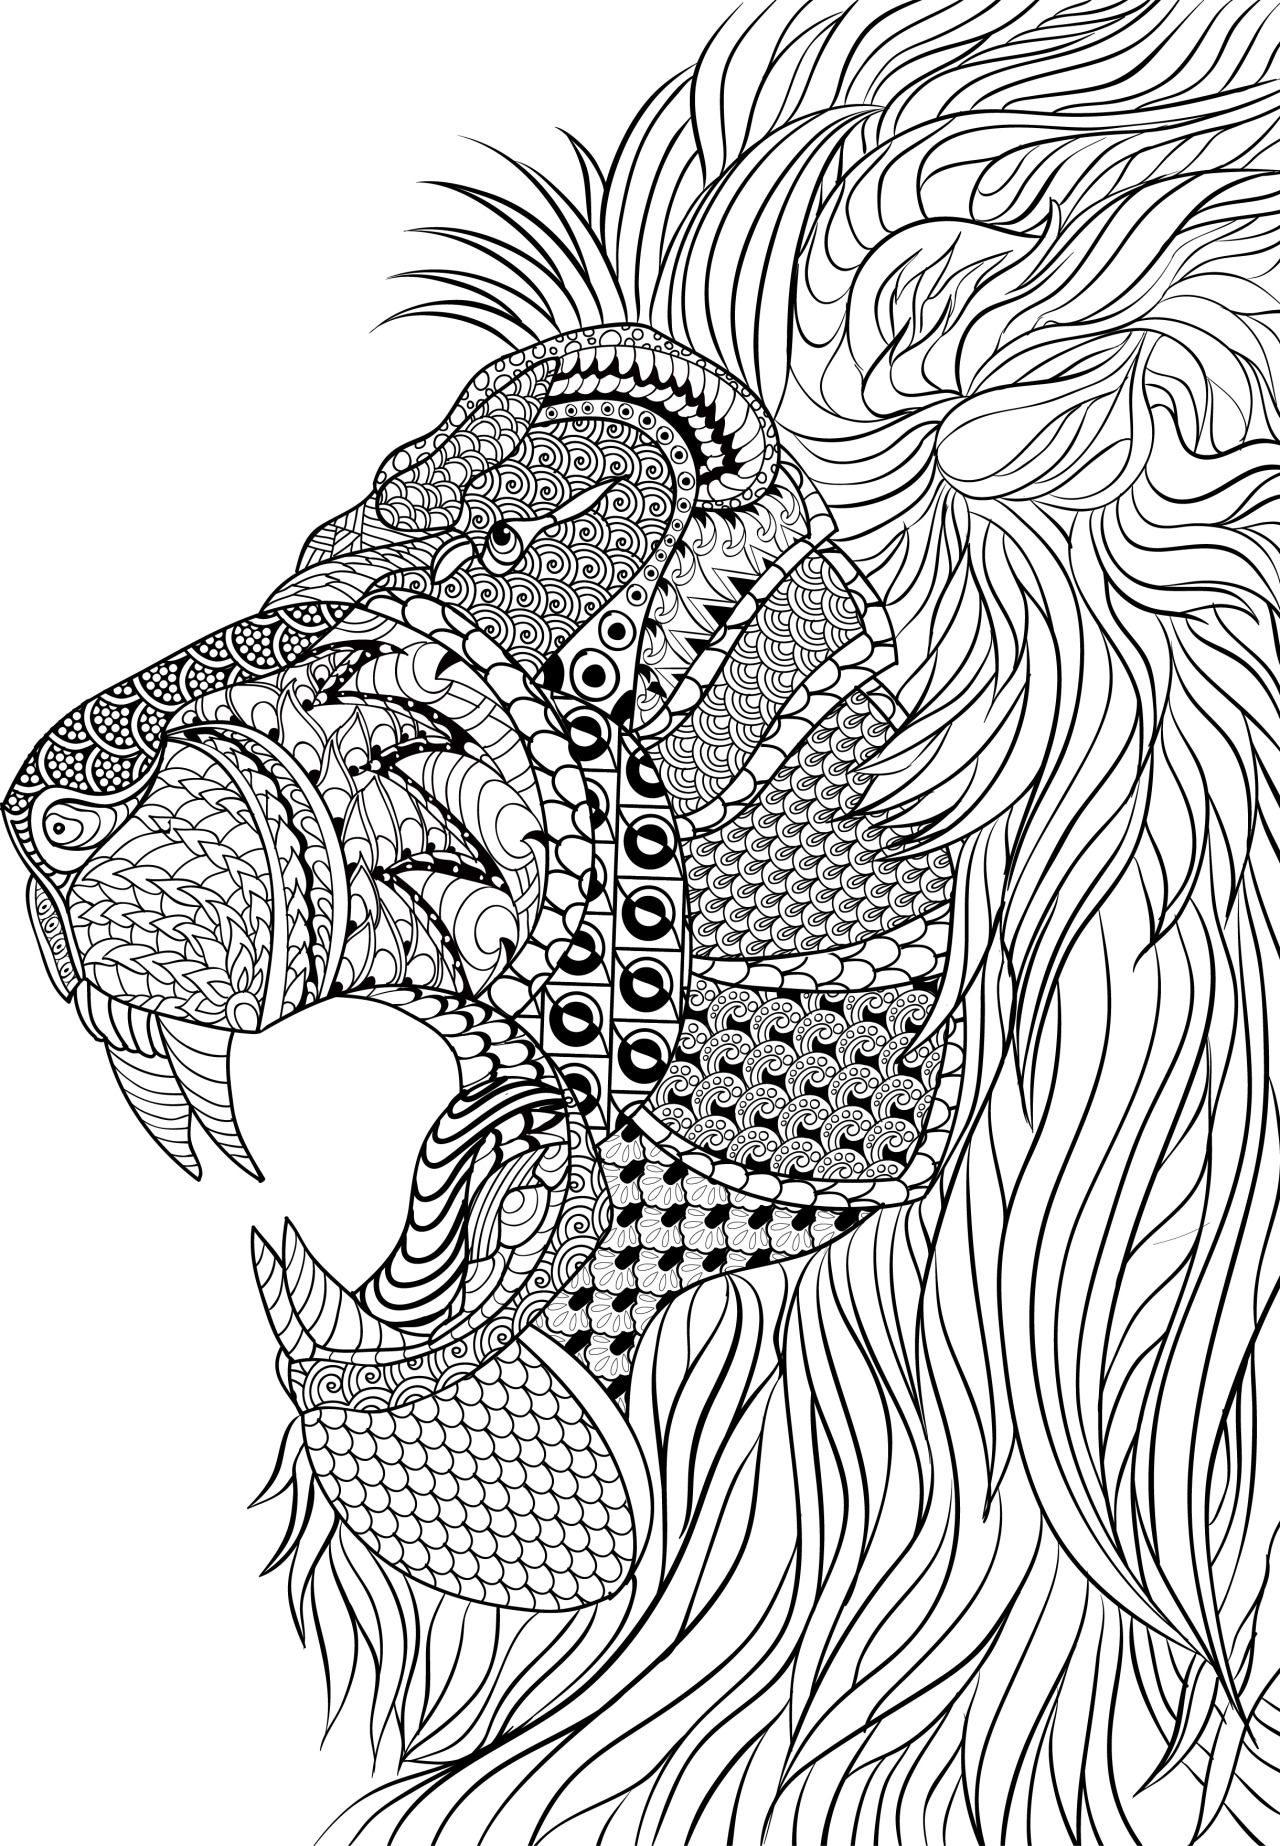 This image comes from our very own book titled Adult coloring book